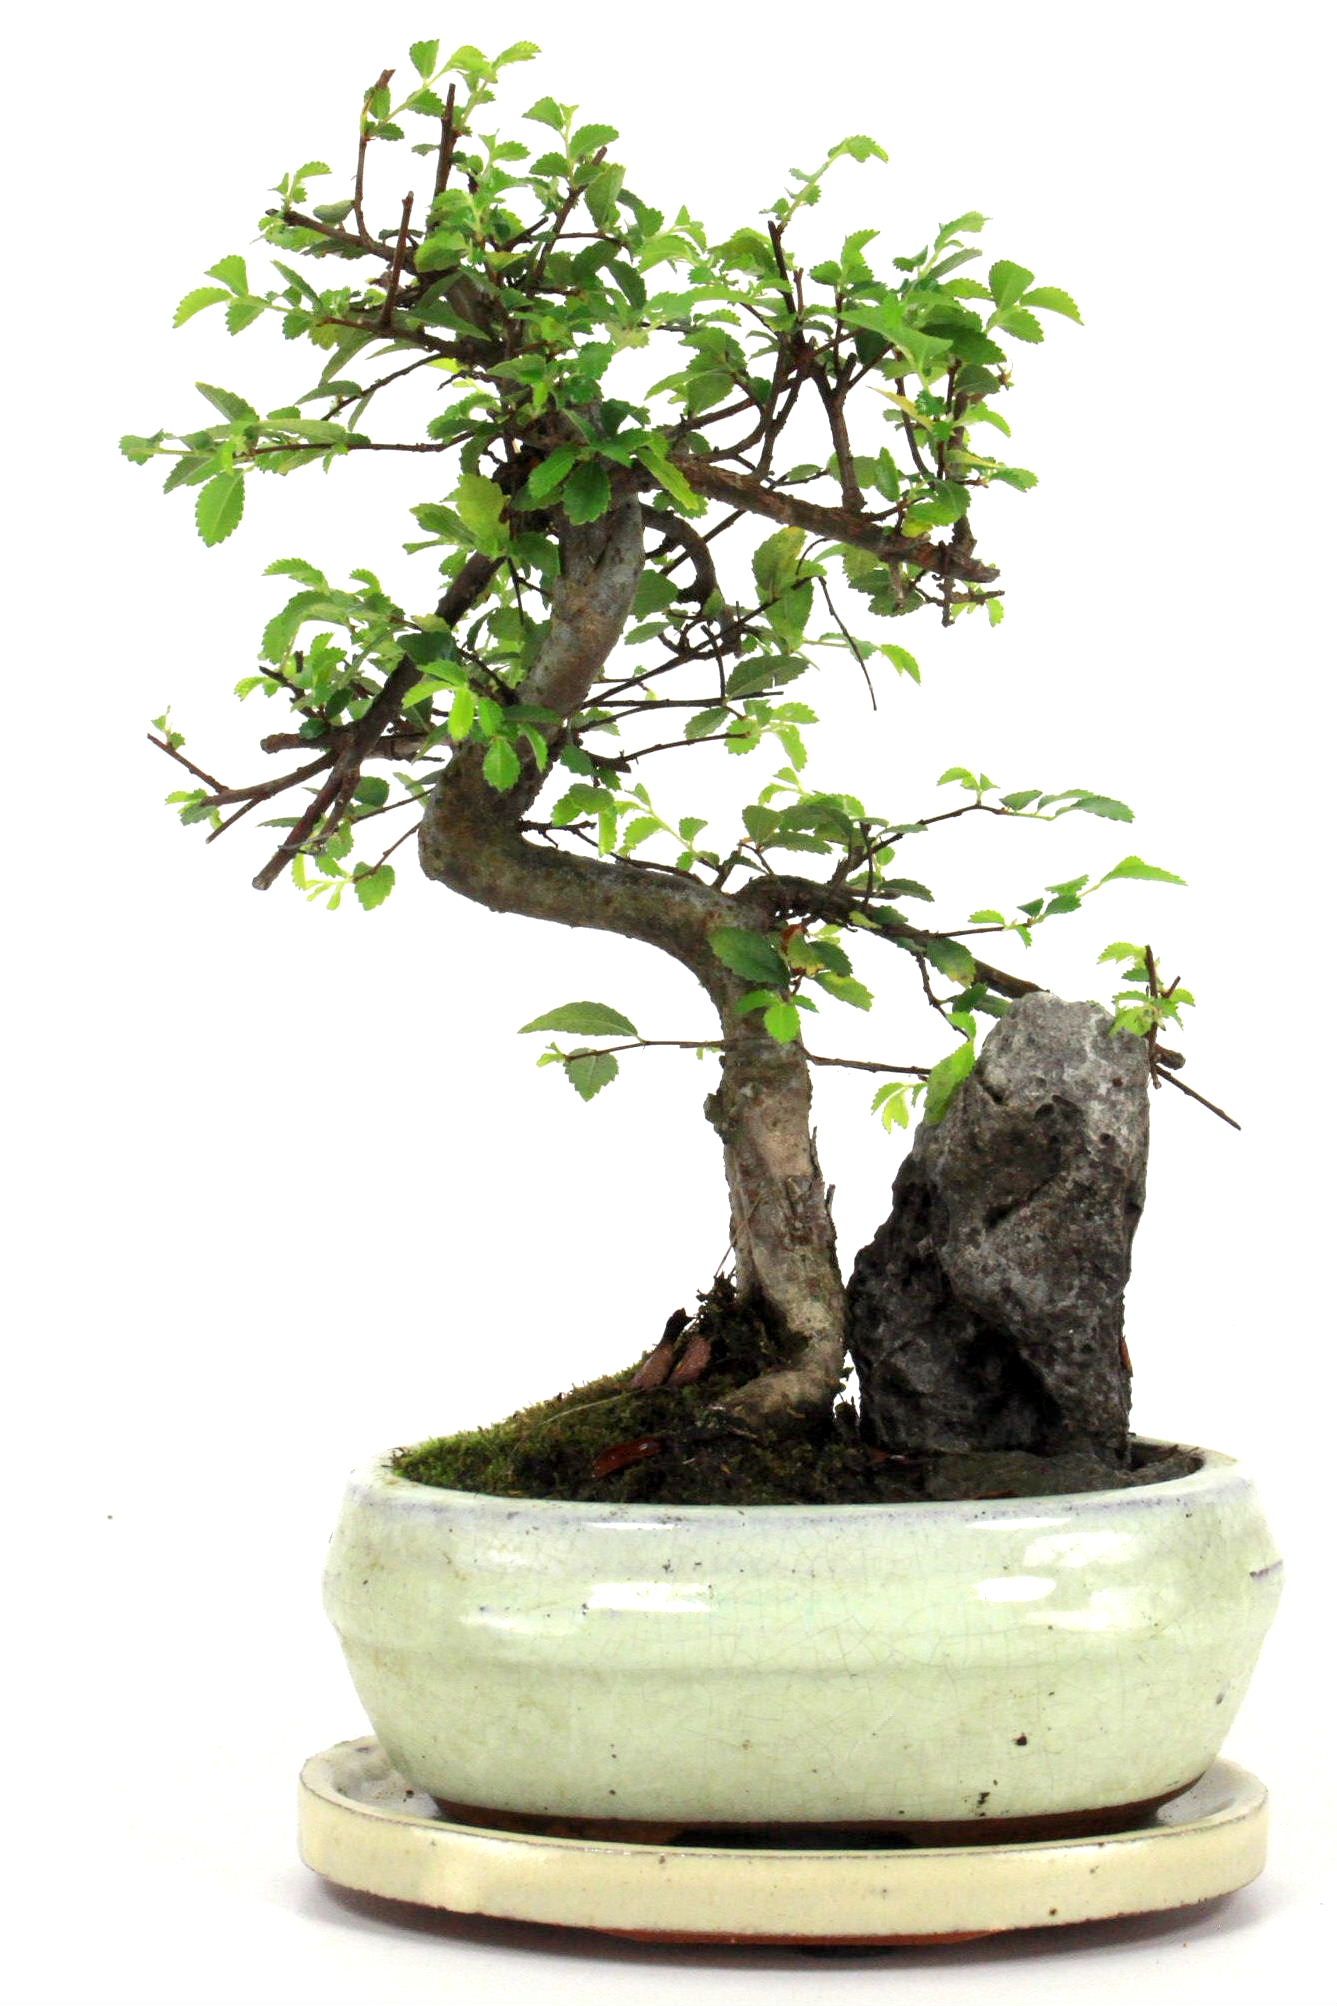 Bonsai chinesische ulme am felsen 30 35 cm 161 bei oyaki for Bonsai onlineshop